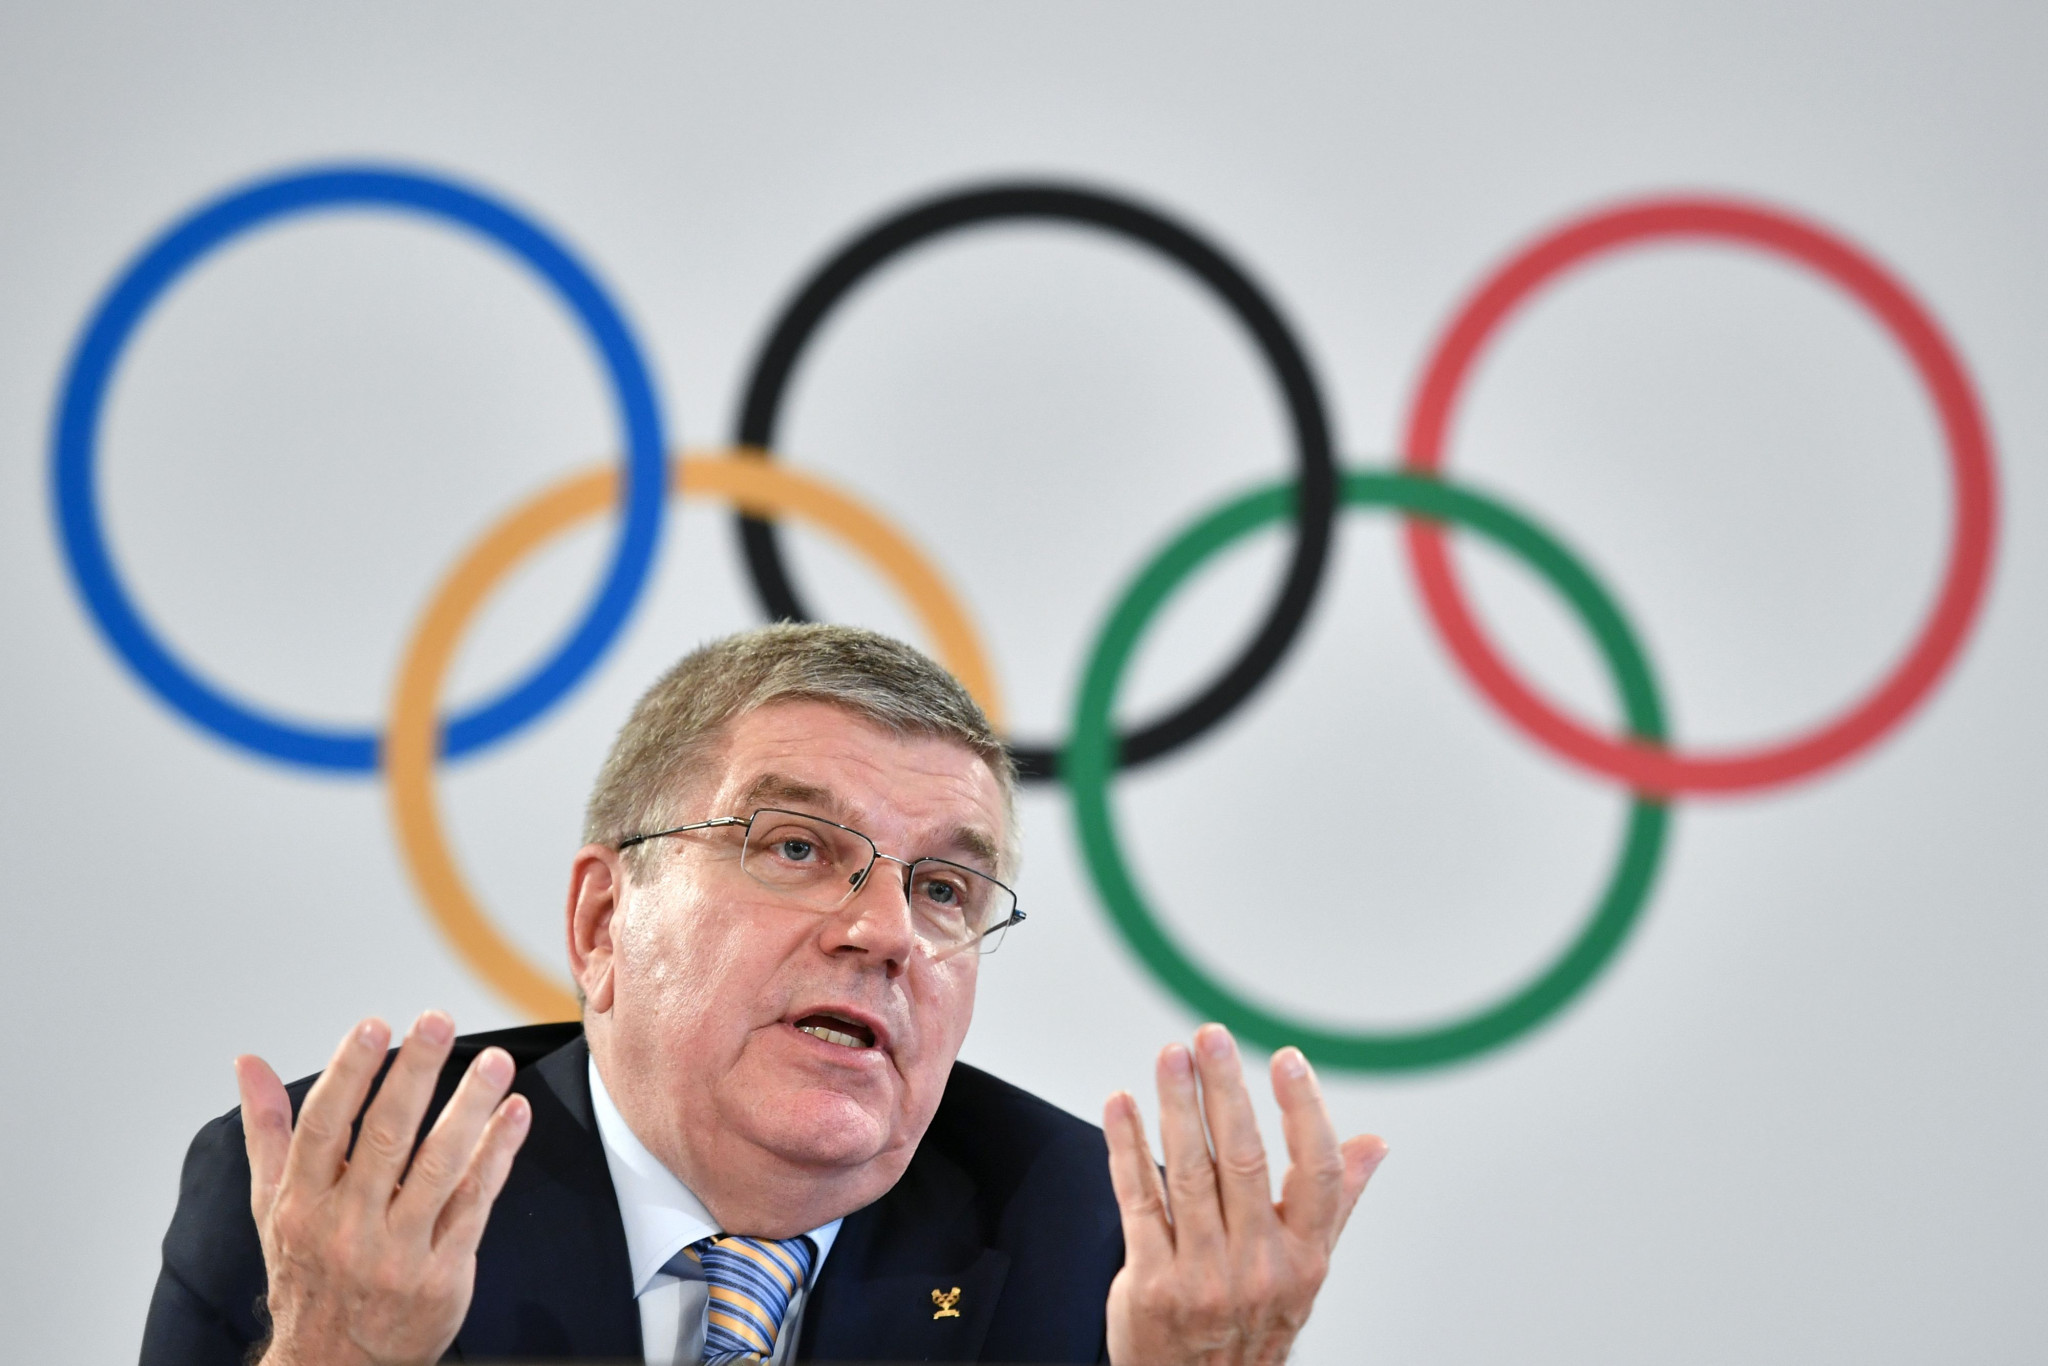 IOC President Thomas Bach said he was hopeful the UN would agree to their request ©Getty Images